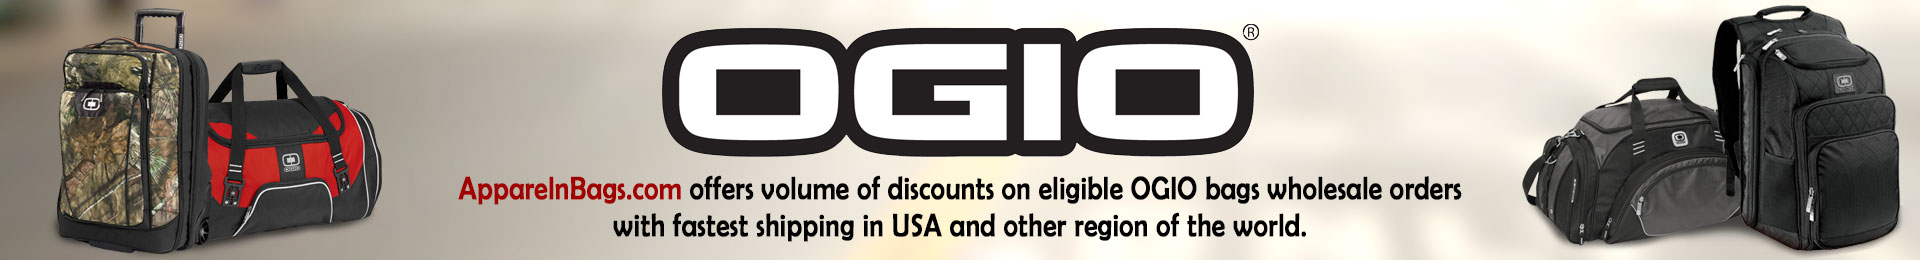 Custom Embroidered Ogio Bags, Backpacks & Duffel Bags